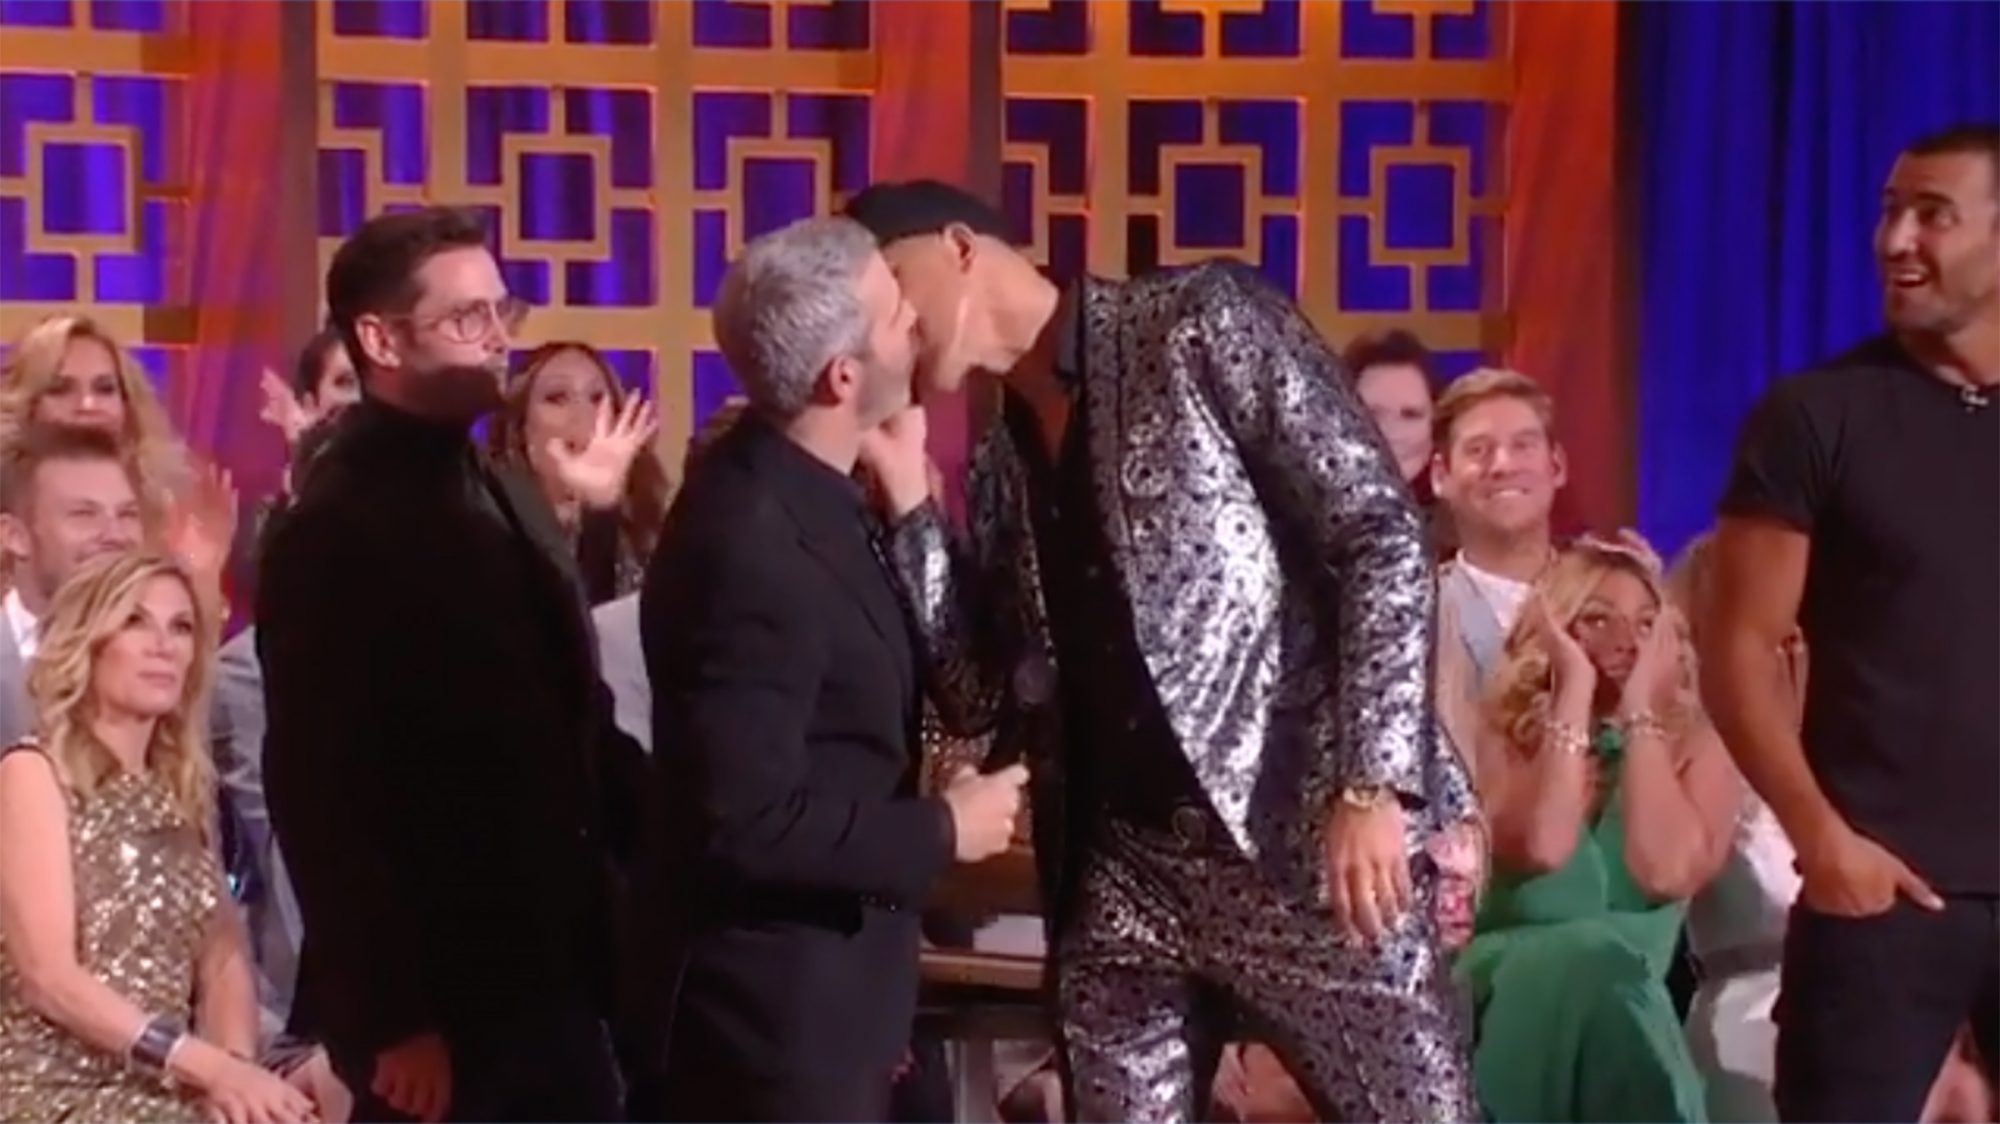 Frederick Eklund kisses Andy Cohen onstage at BravoCon